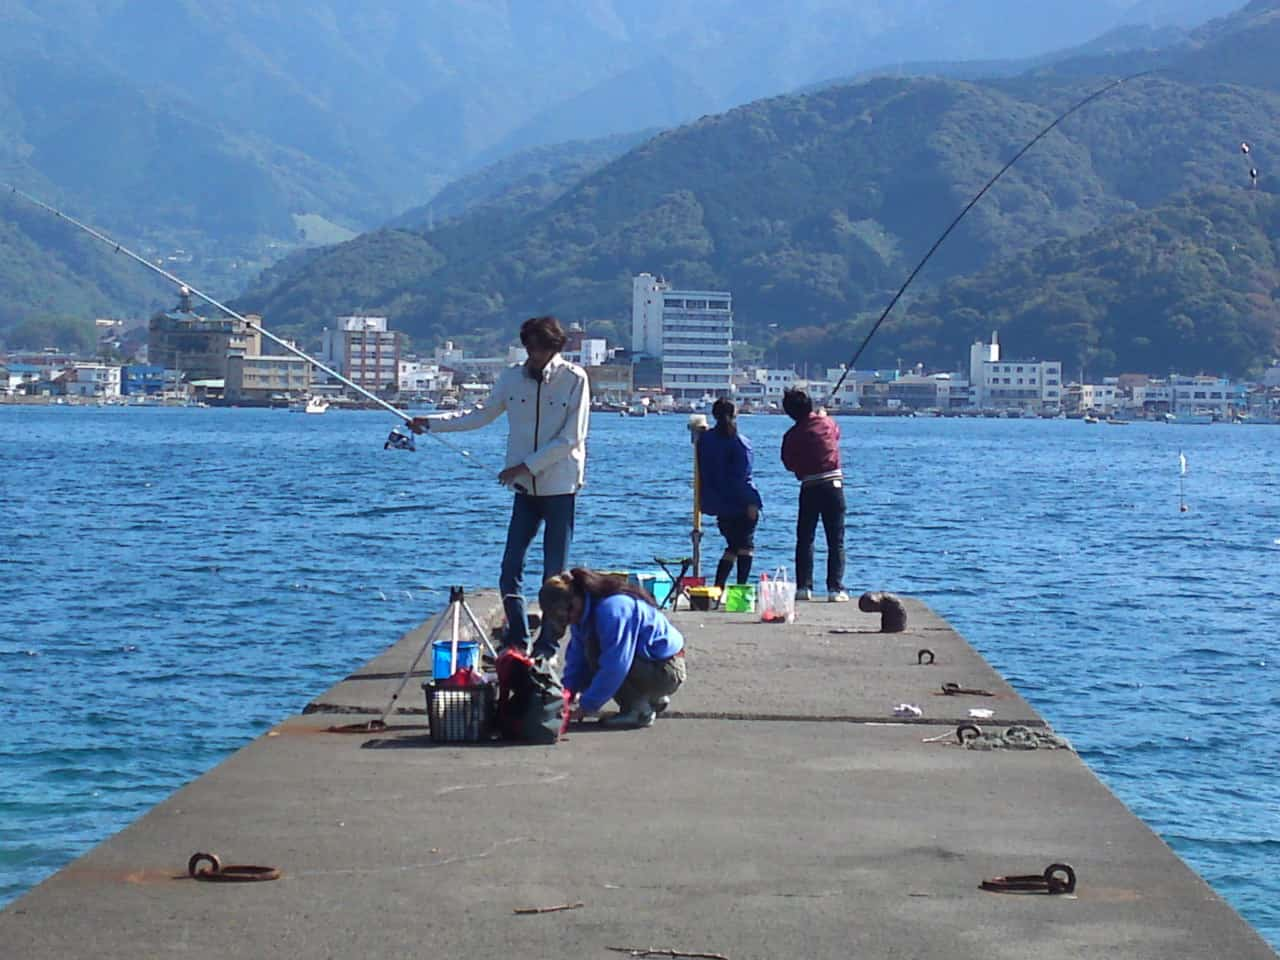 Heda Izu Peninsula Mount Fuji view beach crab museum fishing